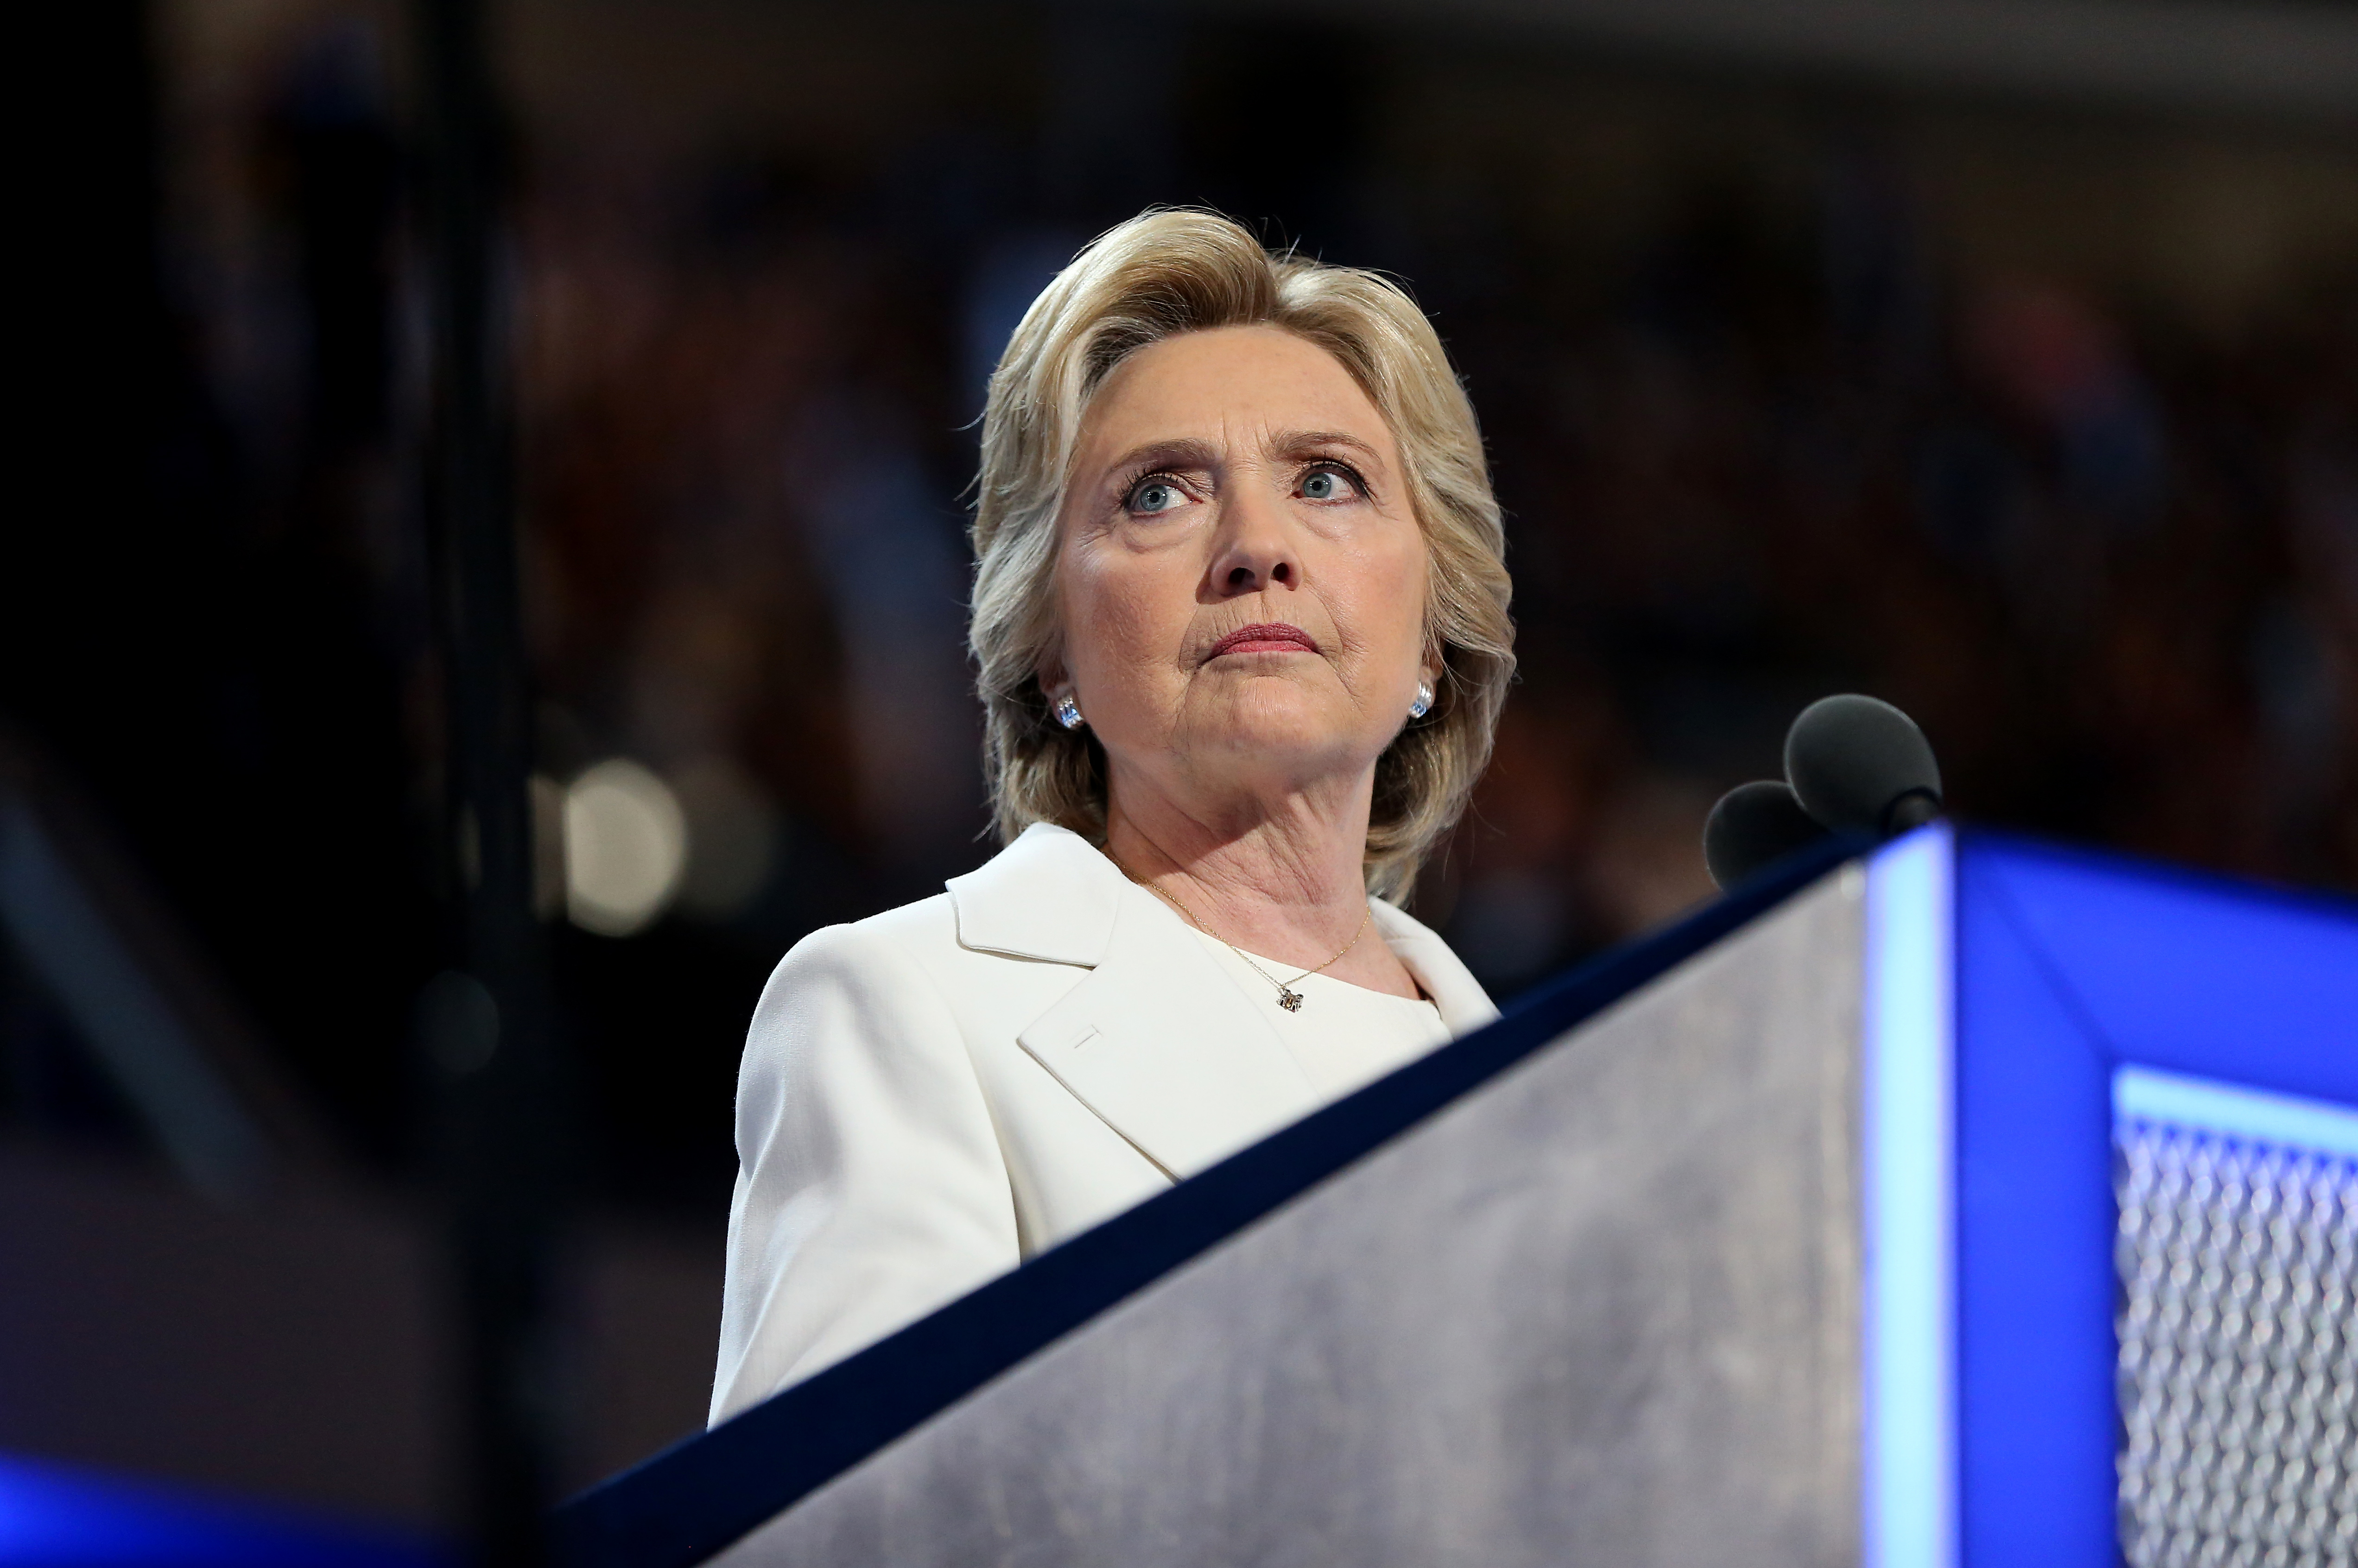 Hillary Clinton, 2016 Democratic presidential nominee, pauses during her speech at the Democratic National Convention on  July 28, 2016.